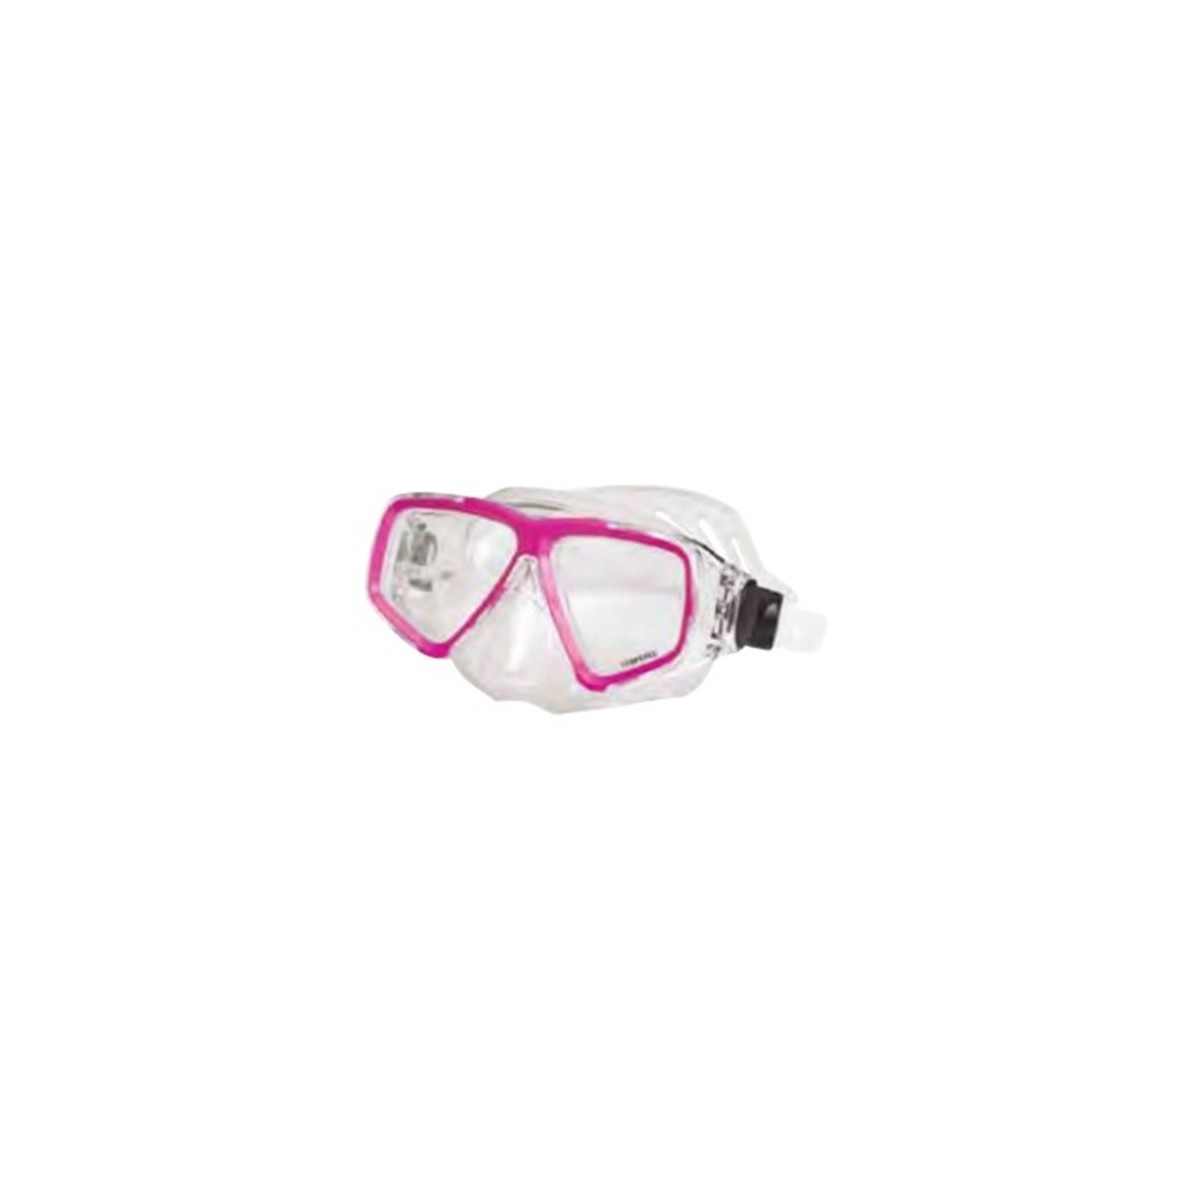 Deep See by Aqua Lung Clarity Two Window Dive Mask